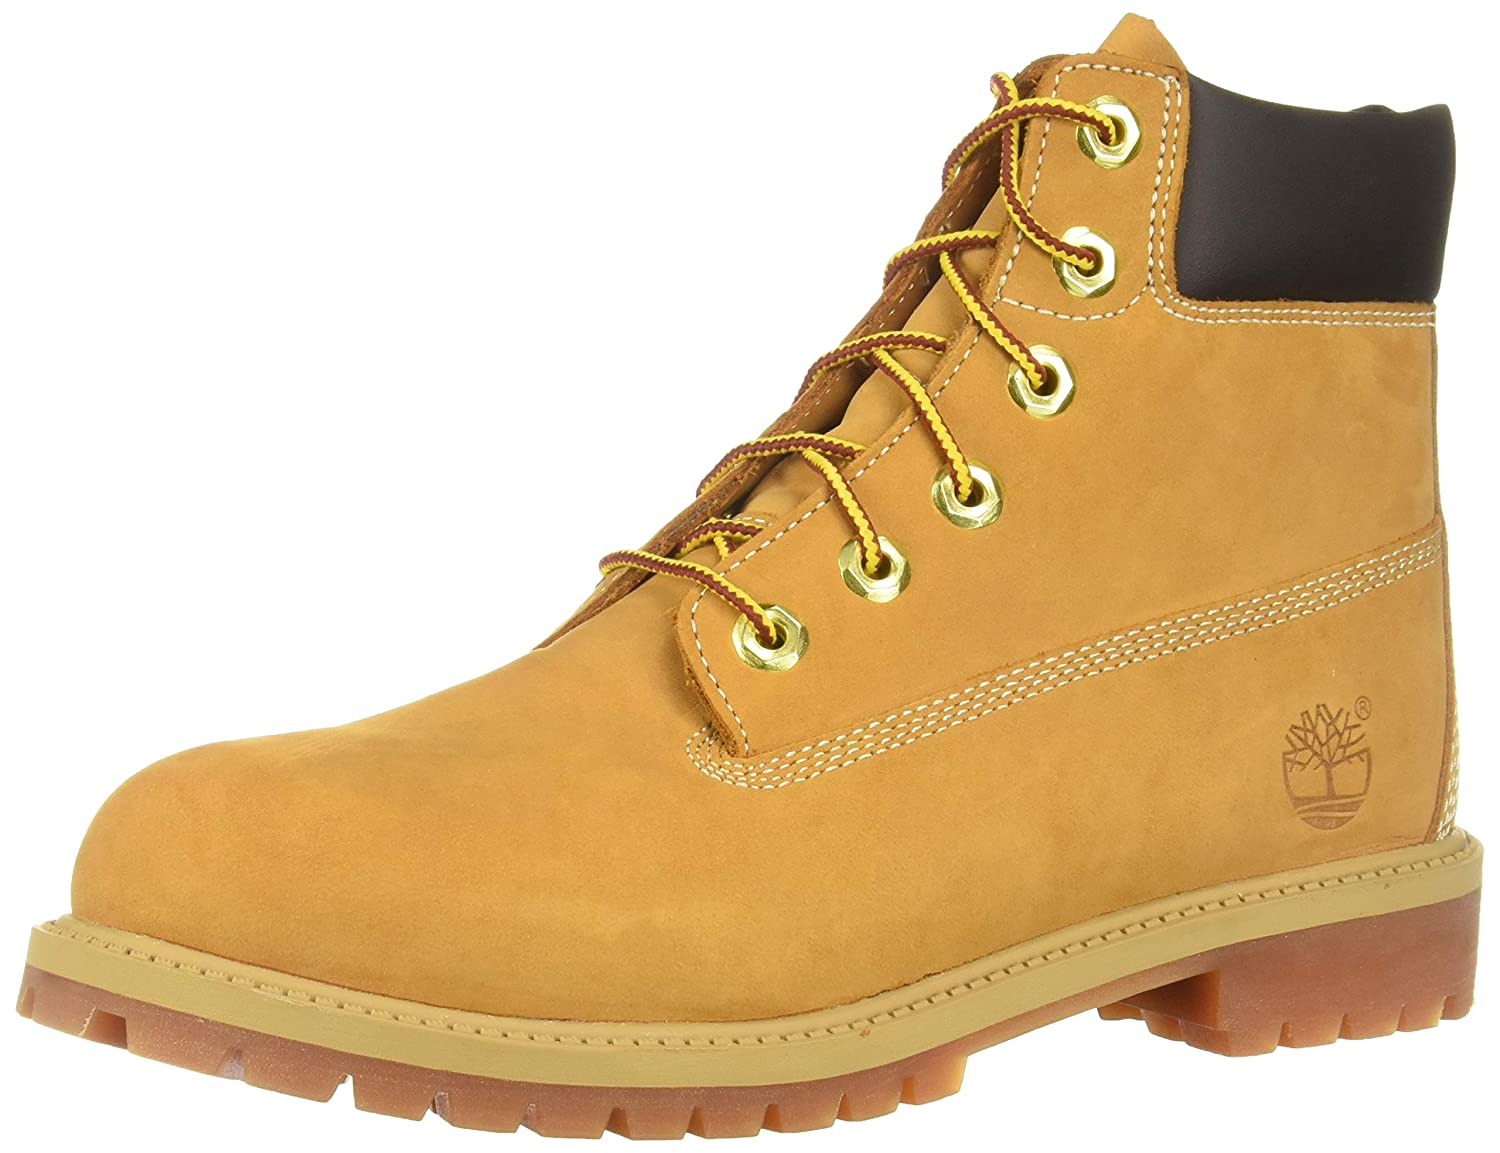 62a062c57 Amazon.com | Timberland Kids' 6